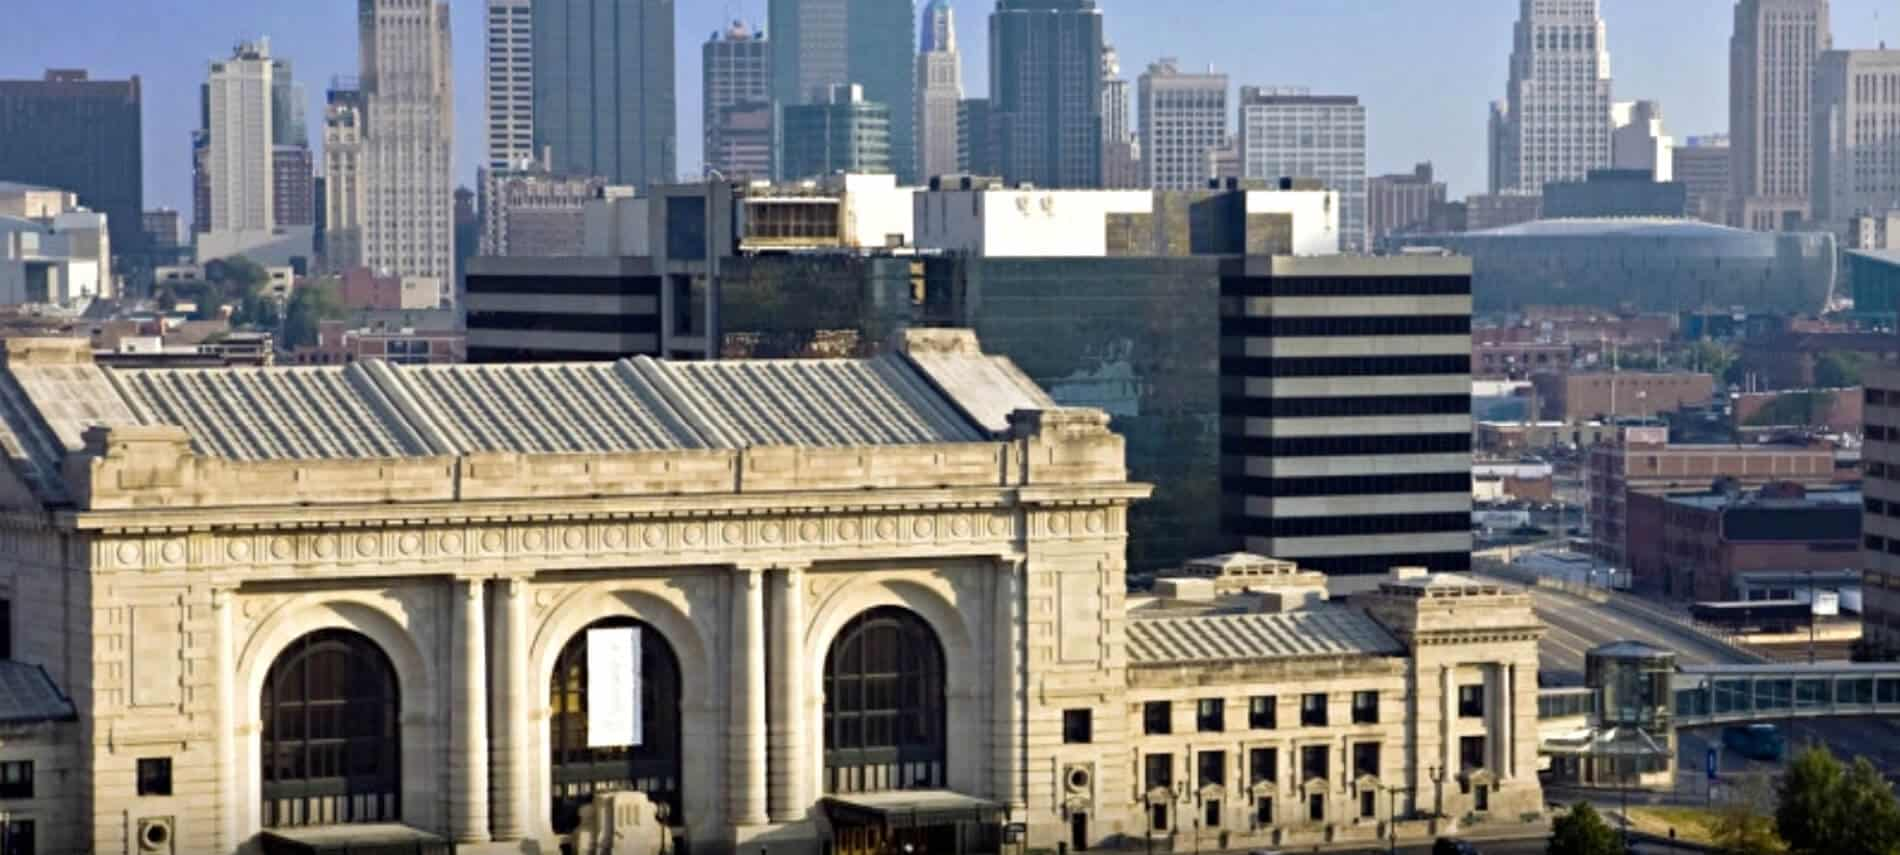 Overview of Kansas City, MO with many tall buildings